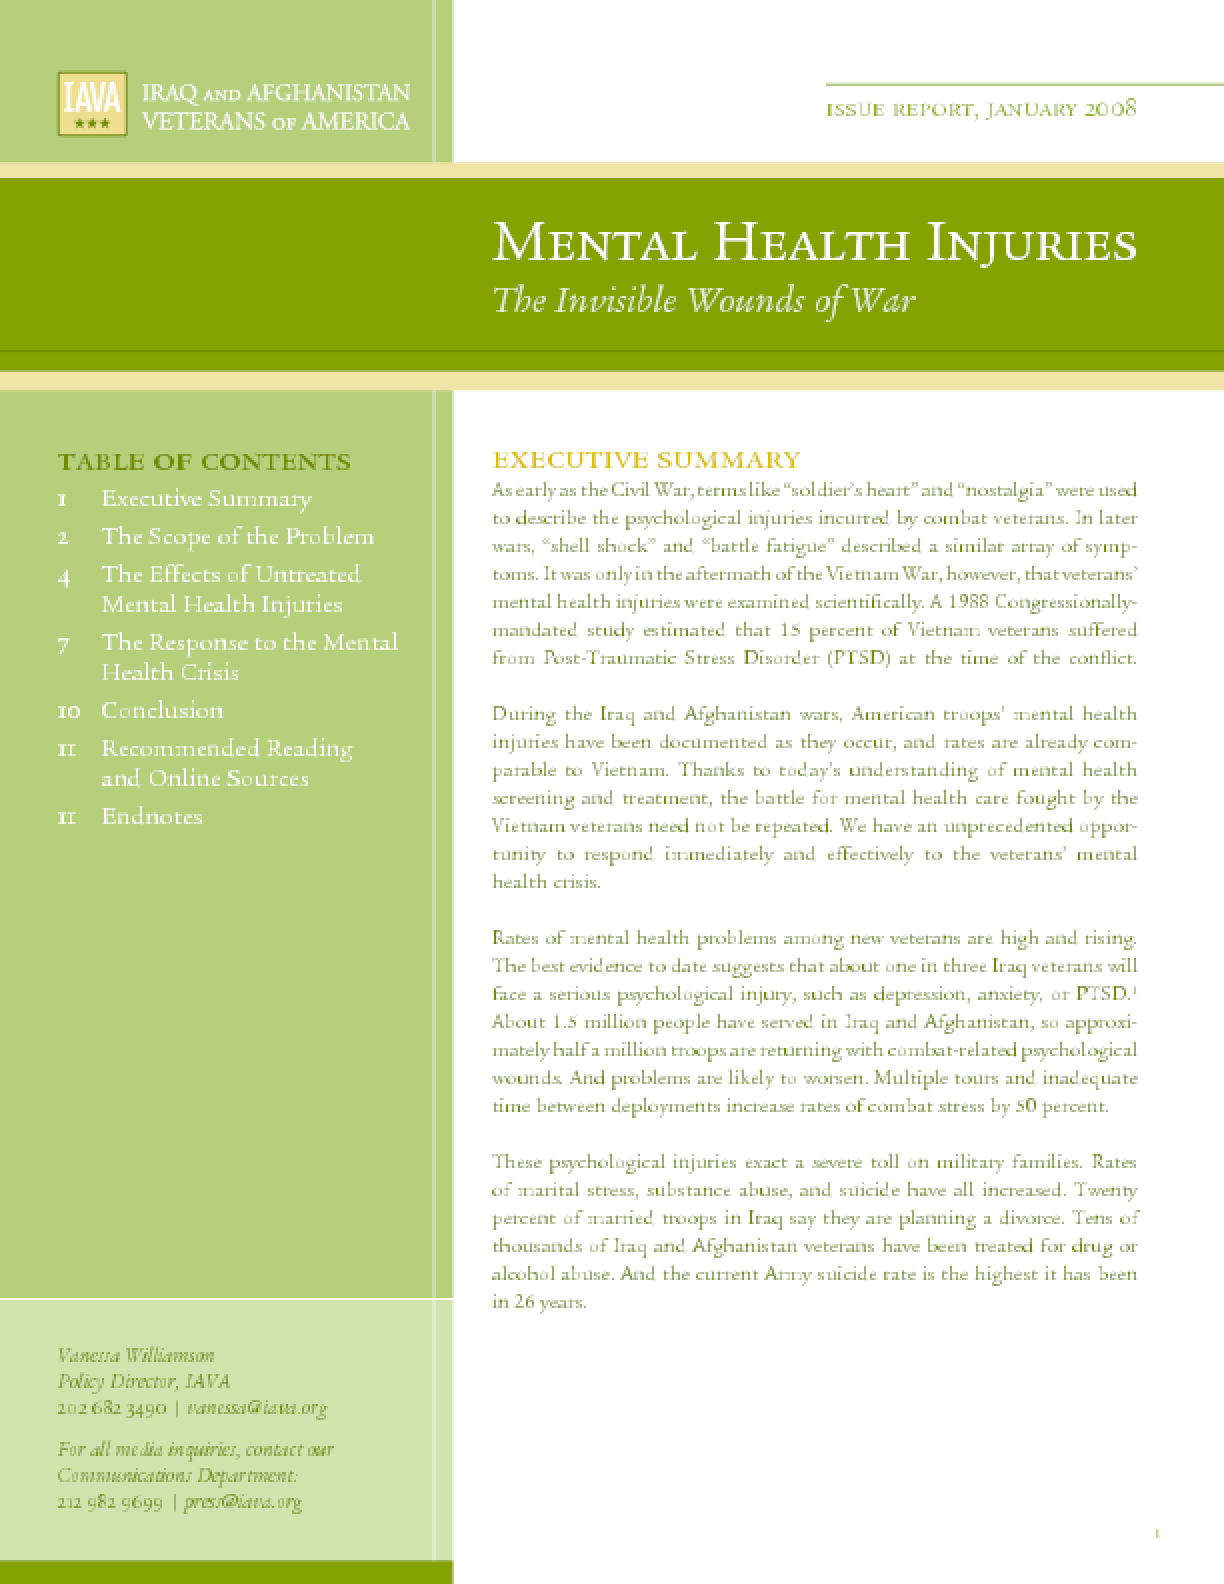 Mental Health Injuries The Invisible Wounds Of War Issuelab